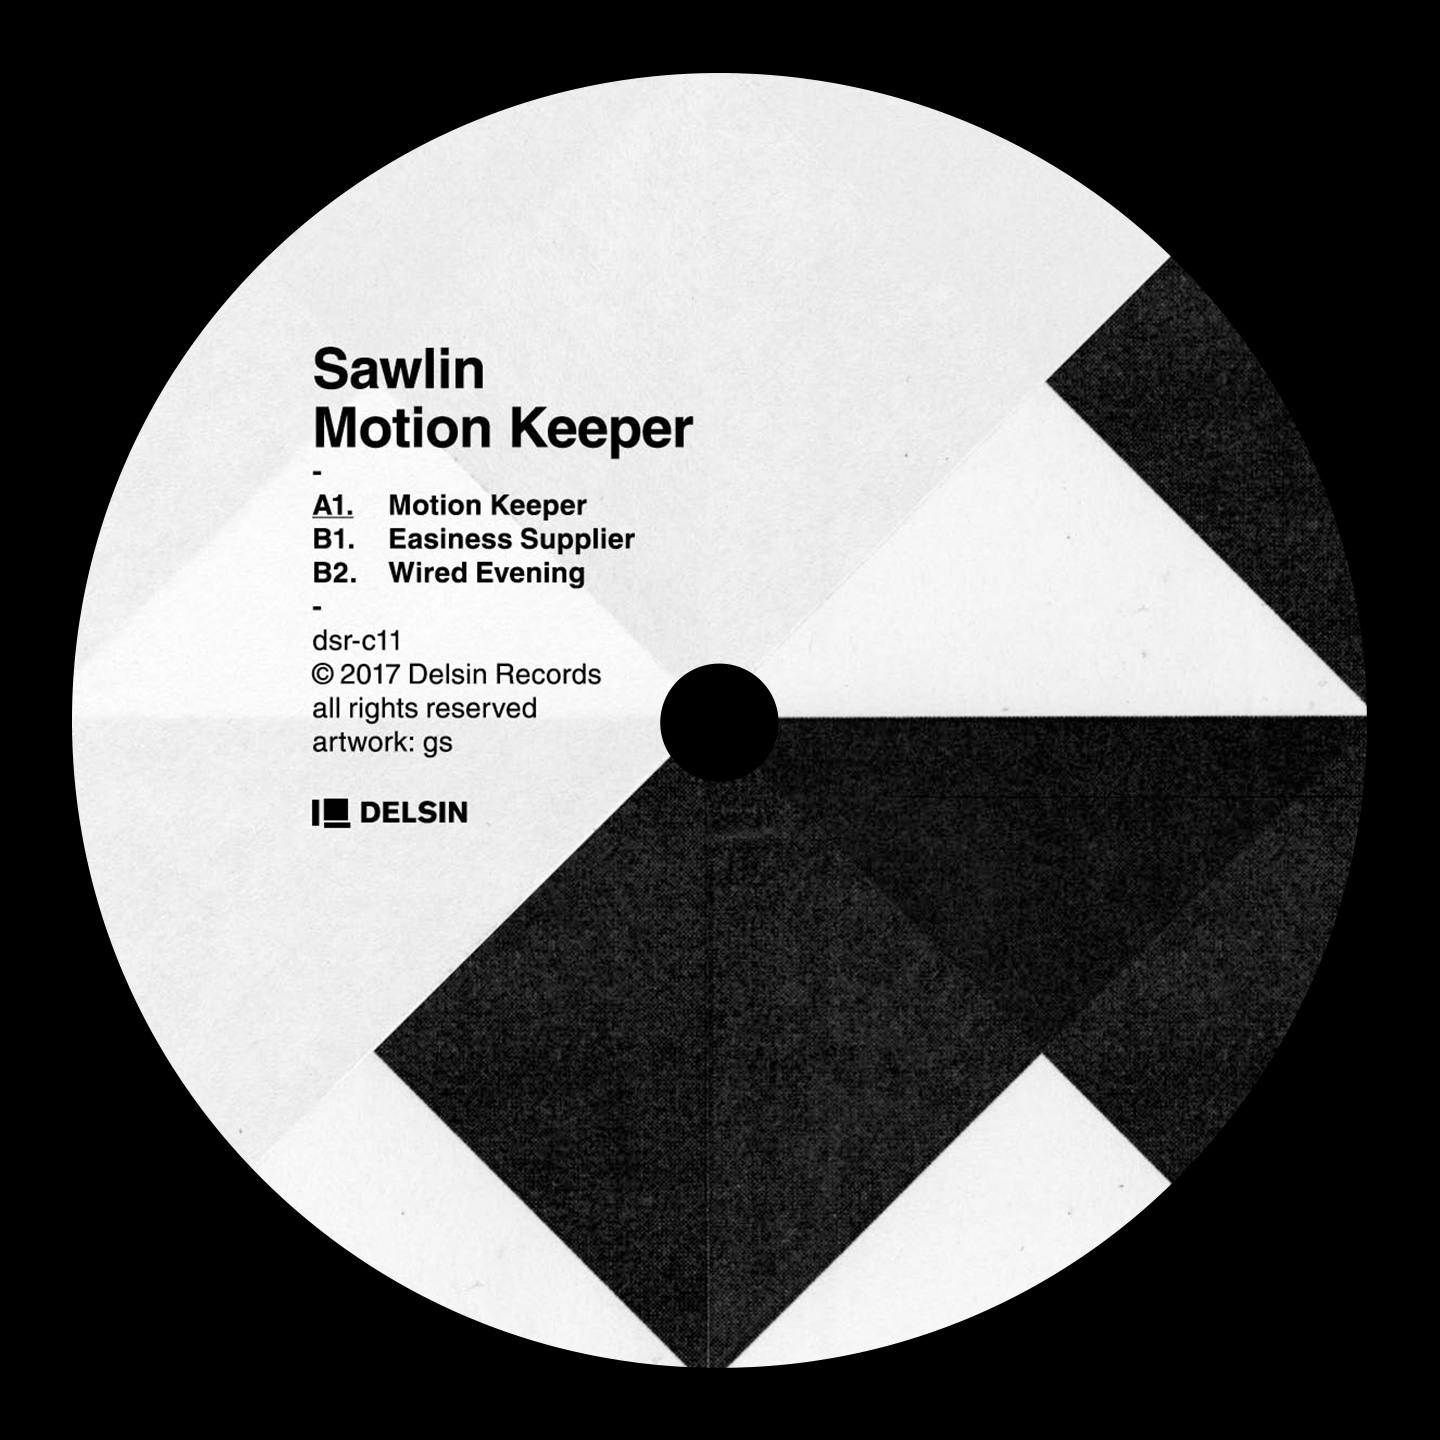 Sawlin - Motion Keeper